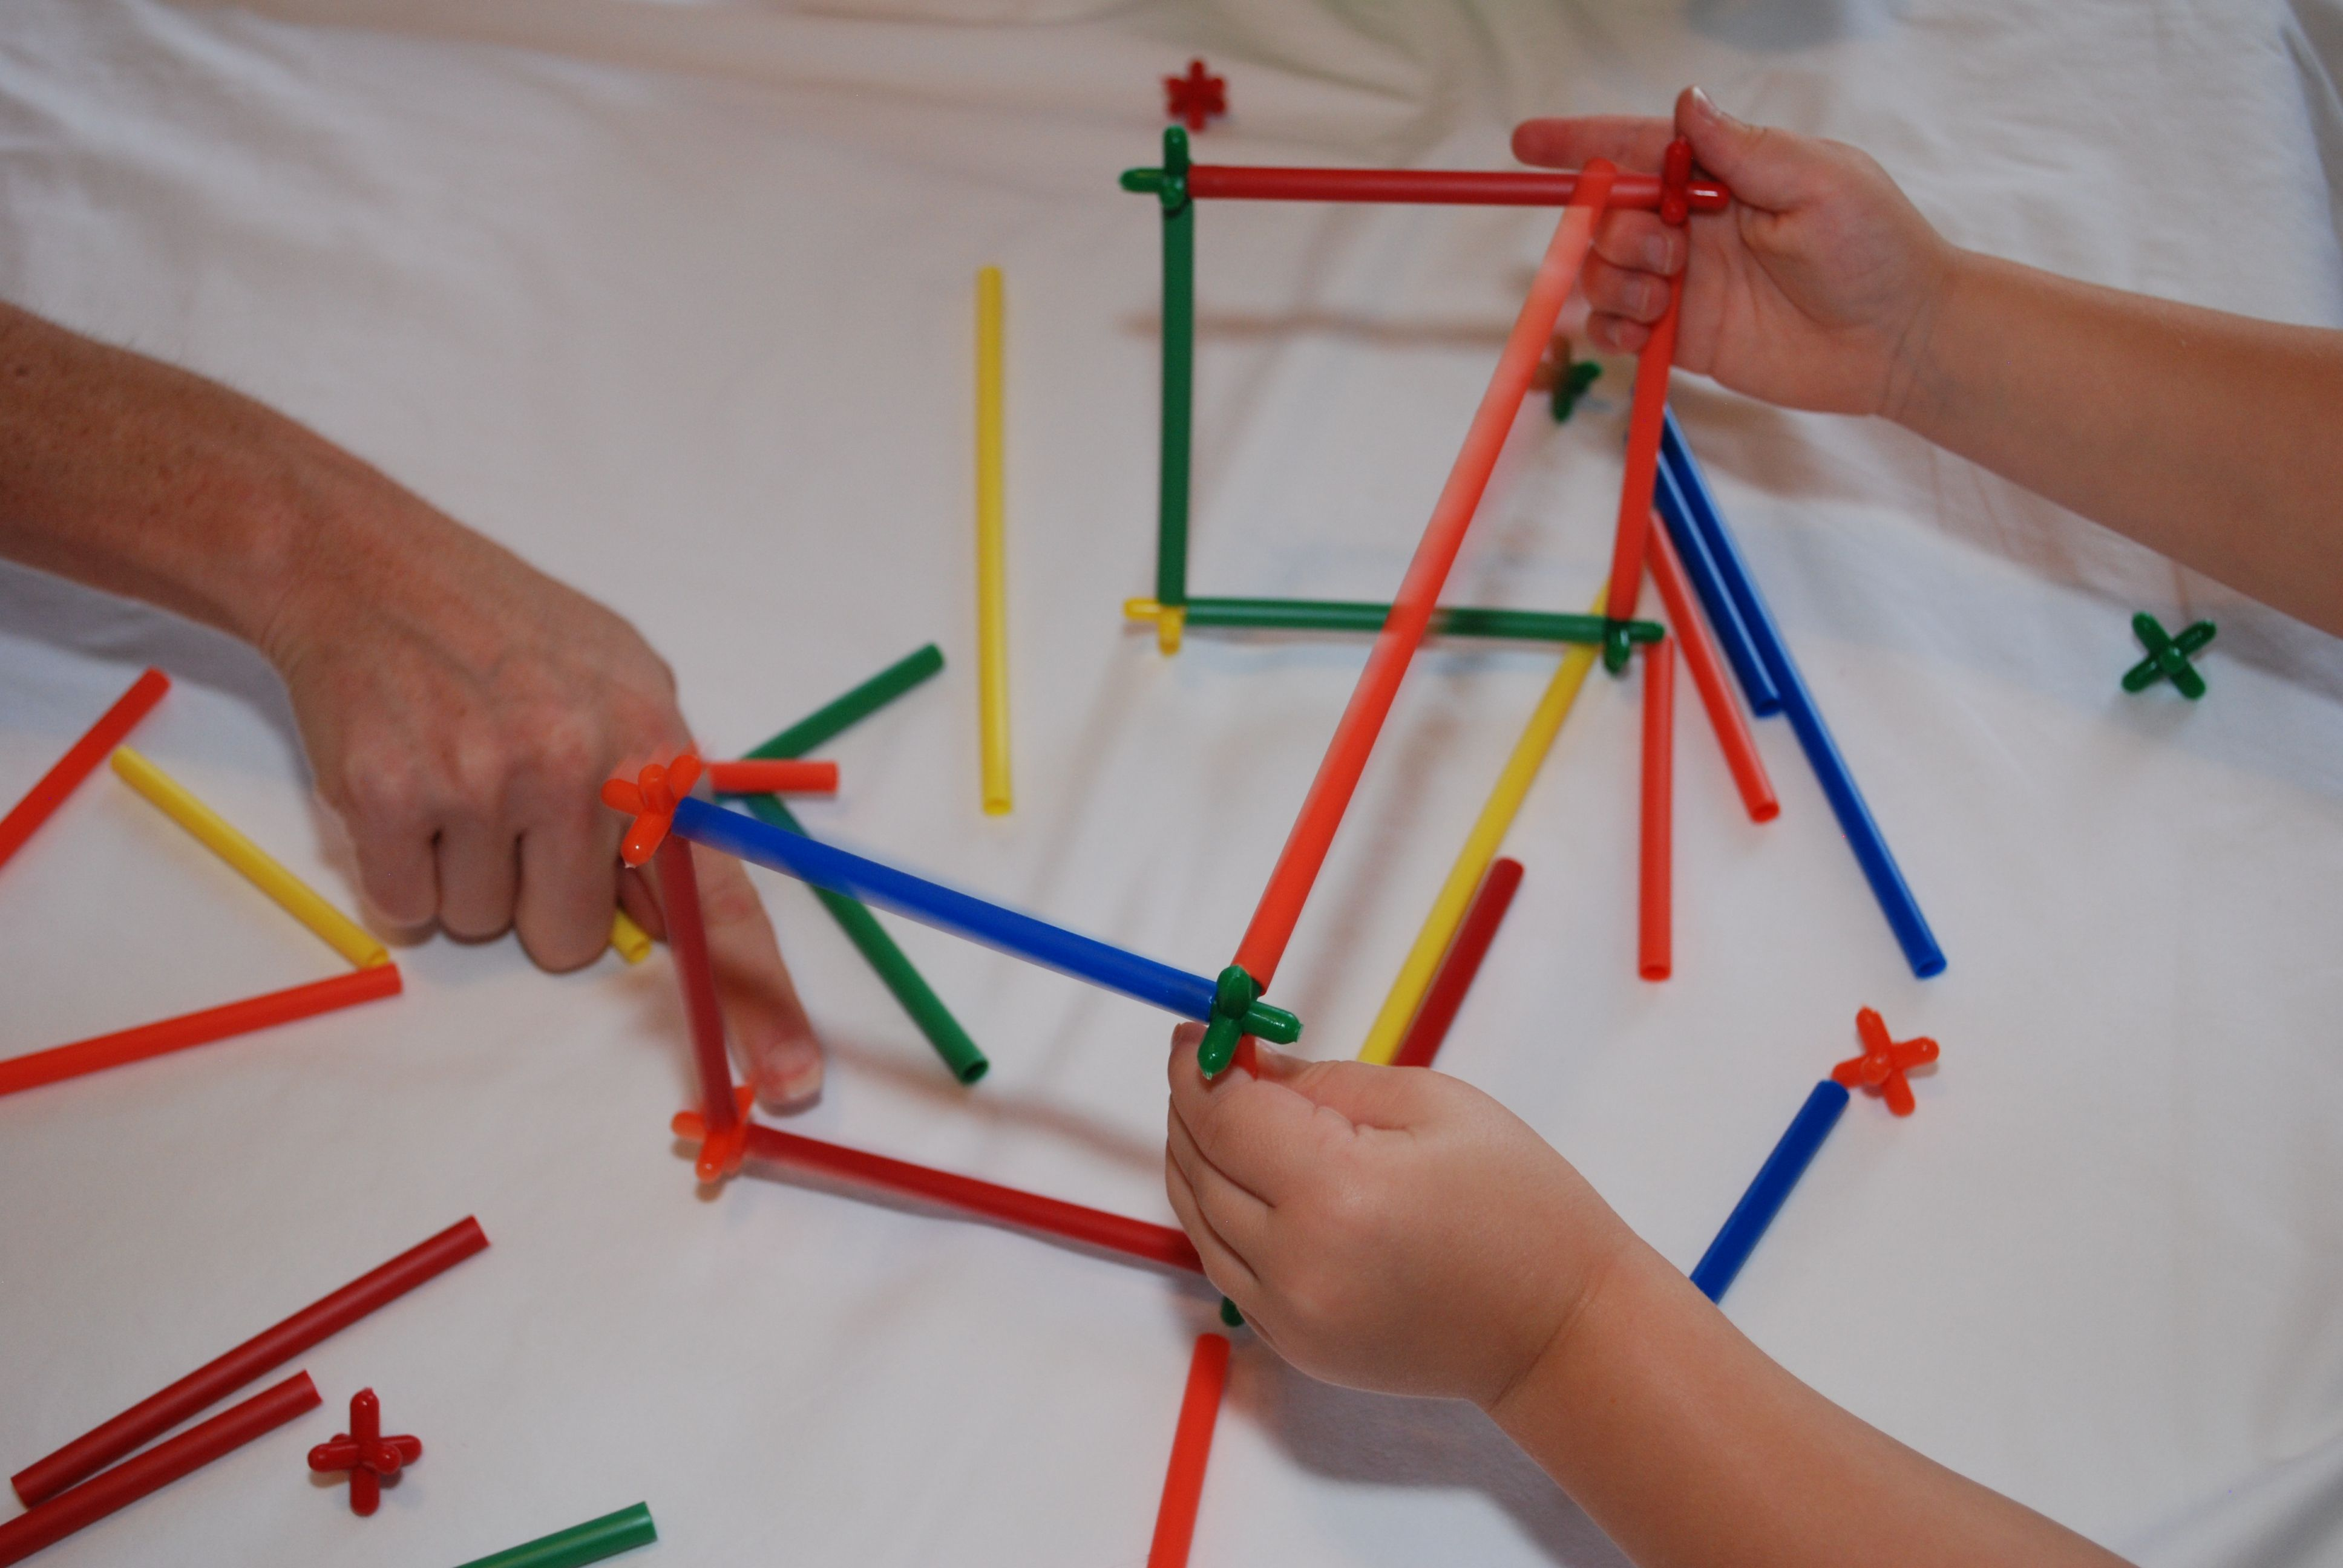 Preschool Construction Activities To Develop Logical